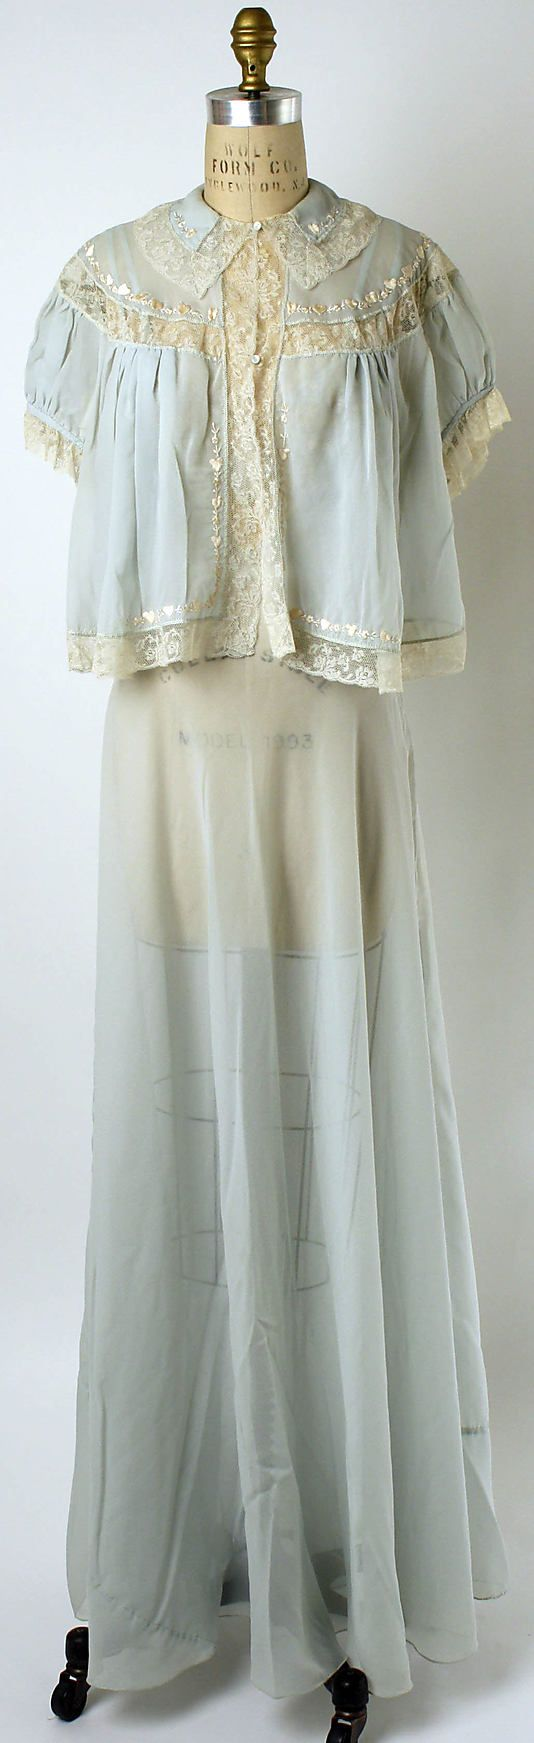 pale blue silk nightgown with jacket, 1952 ...again. just want the bed jacket